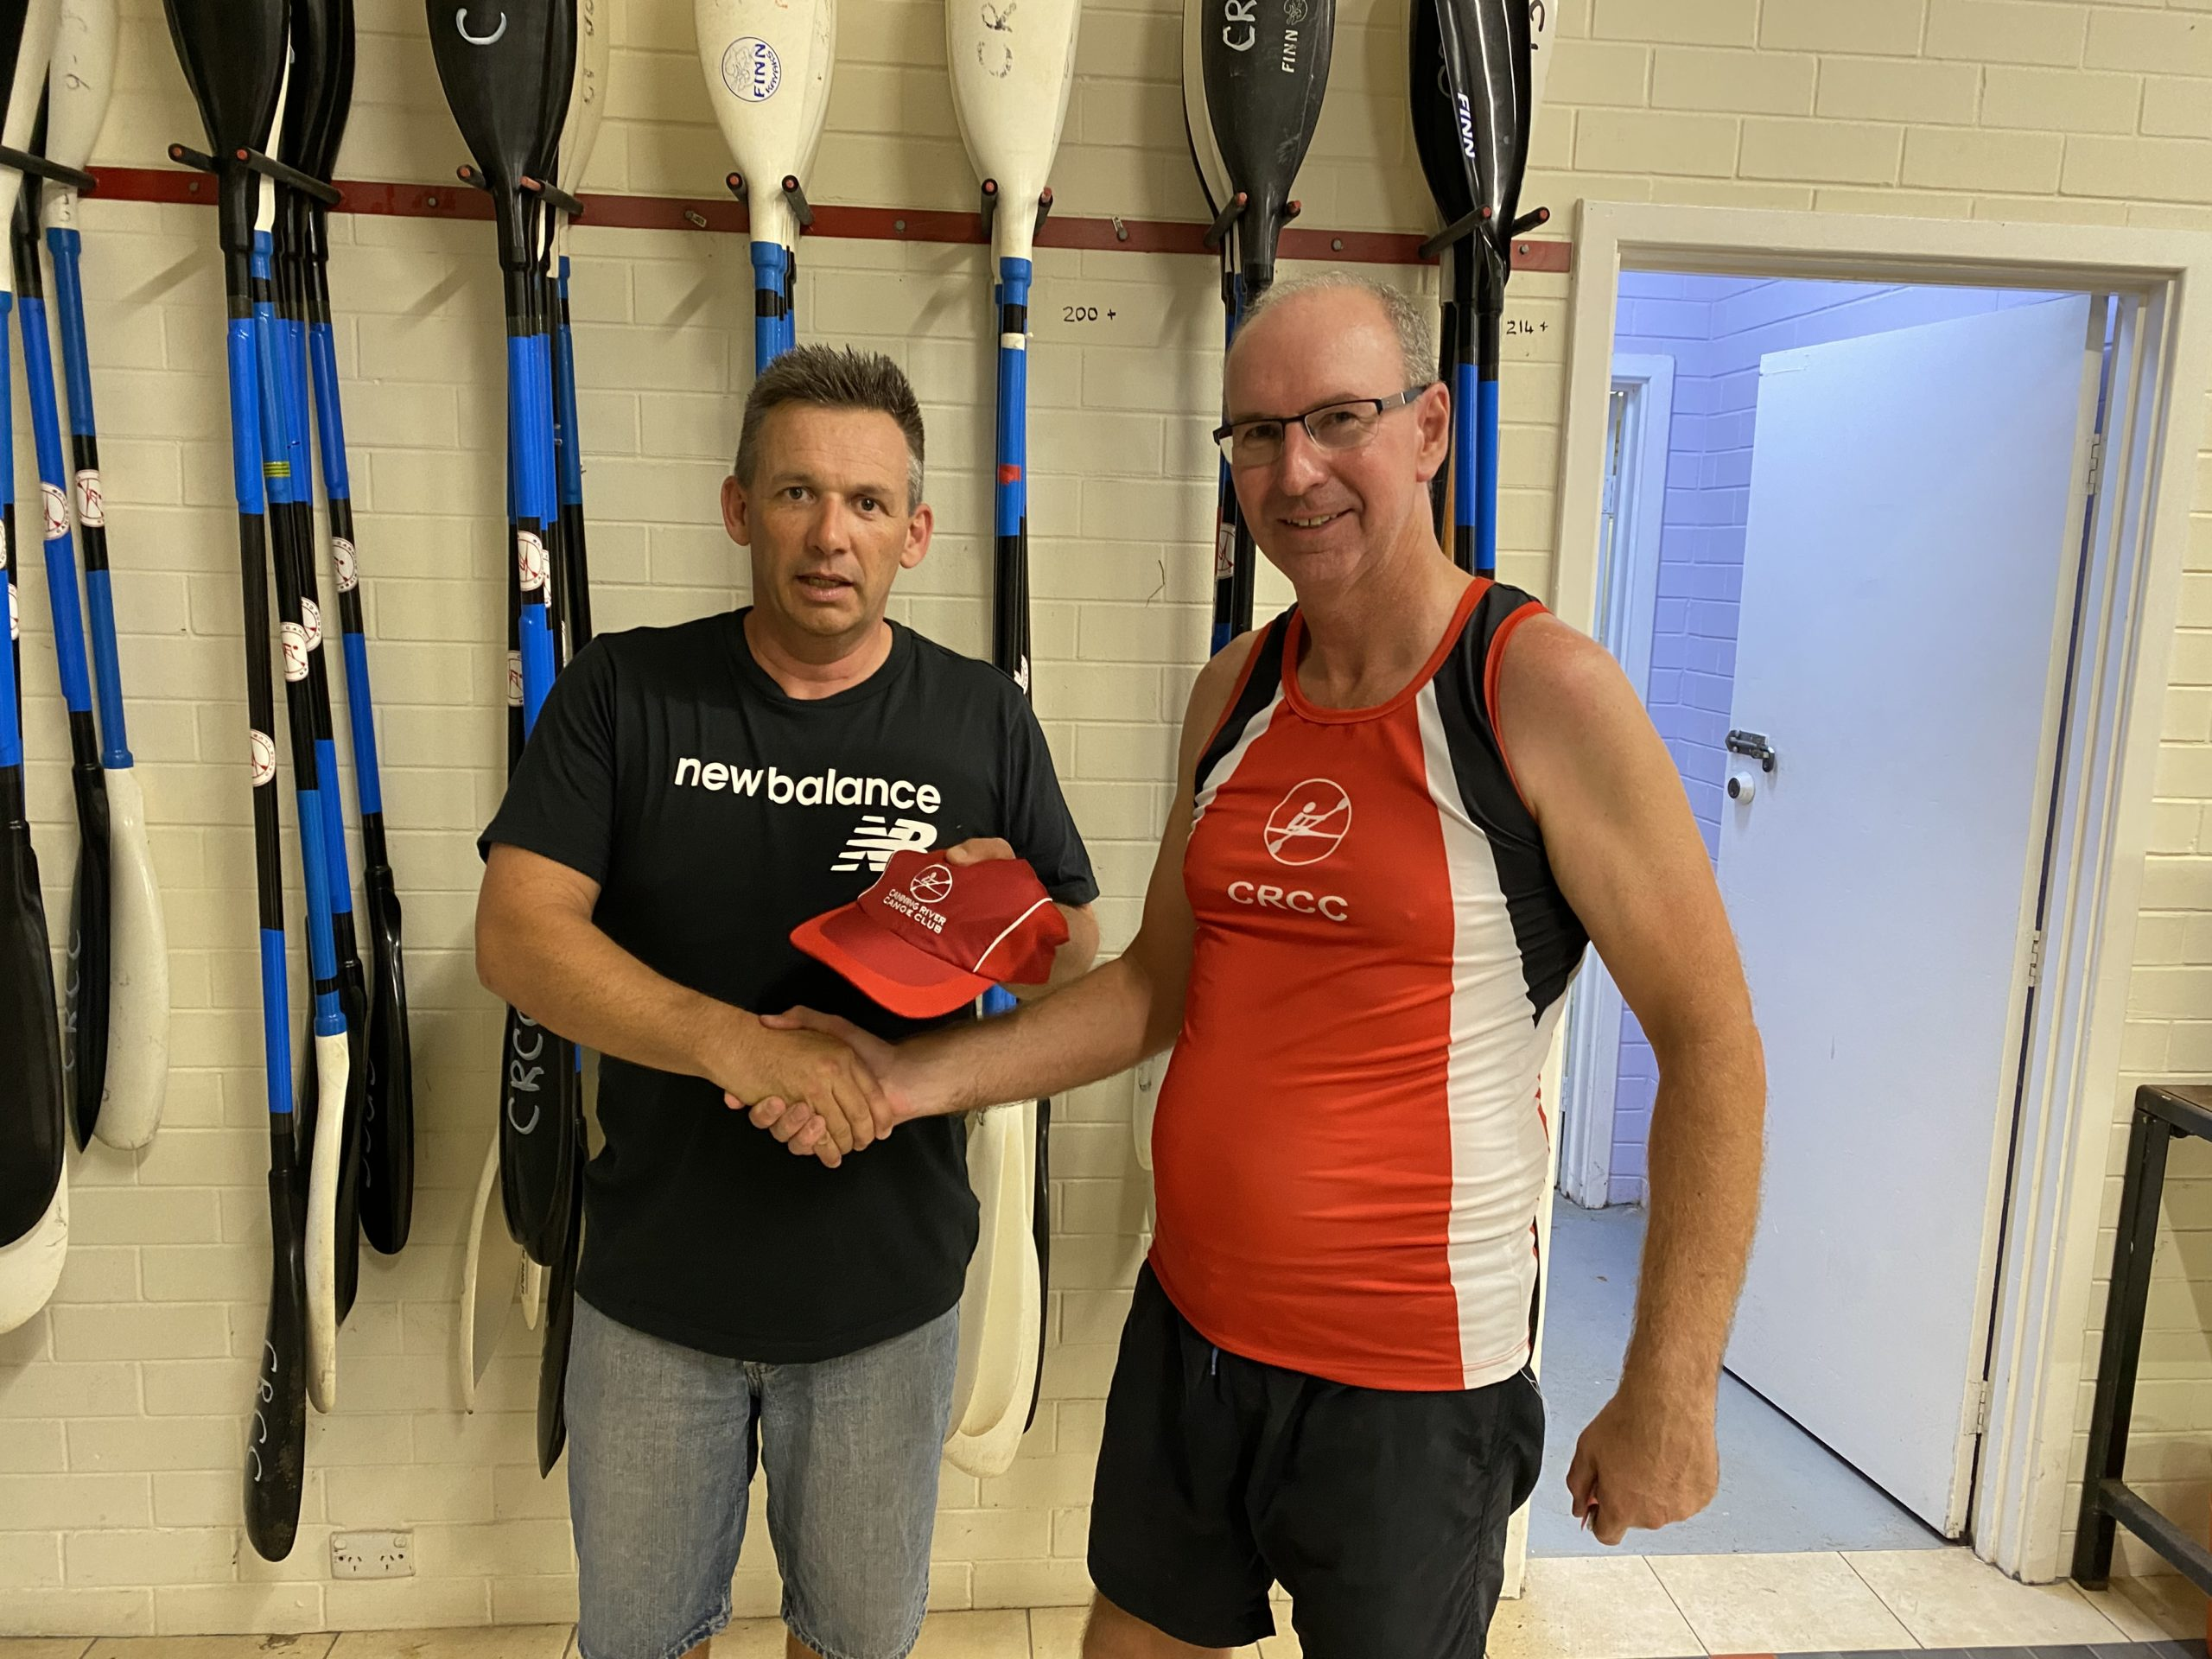 Tuesday 23rd February 2021 : Tonight's photos shows Club Treasurer David Urquhart presenting David Boldy with a club cap as prize.